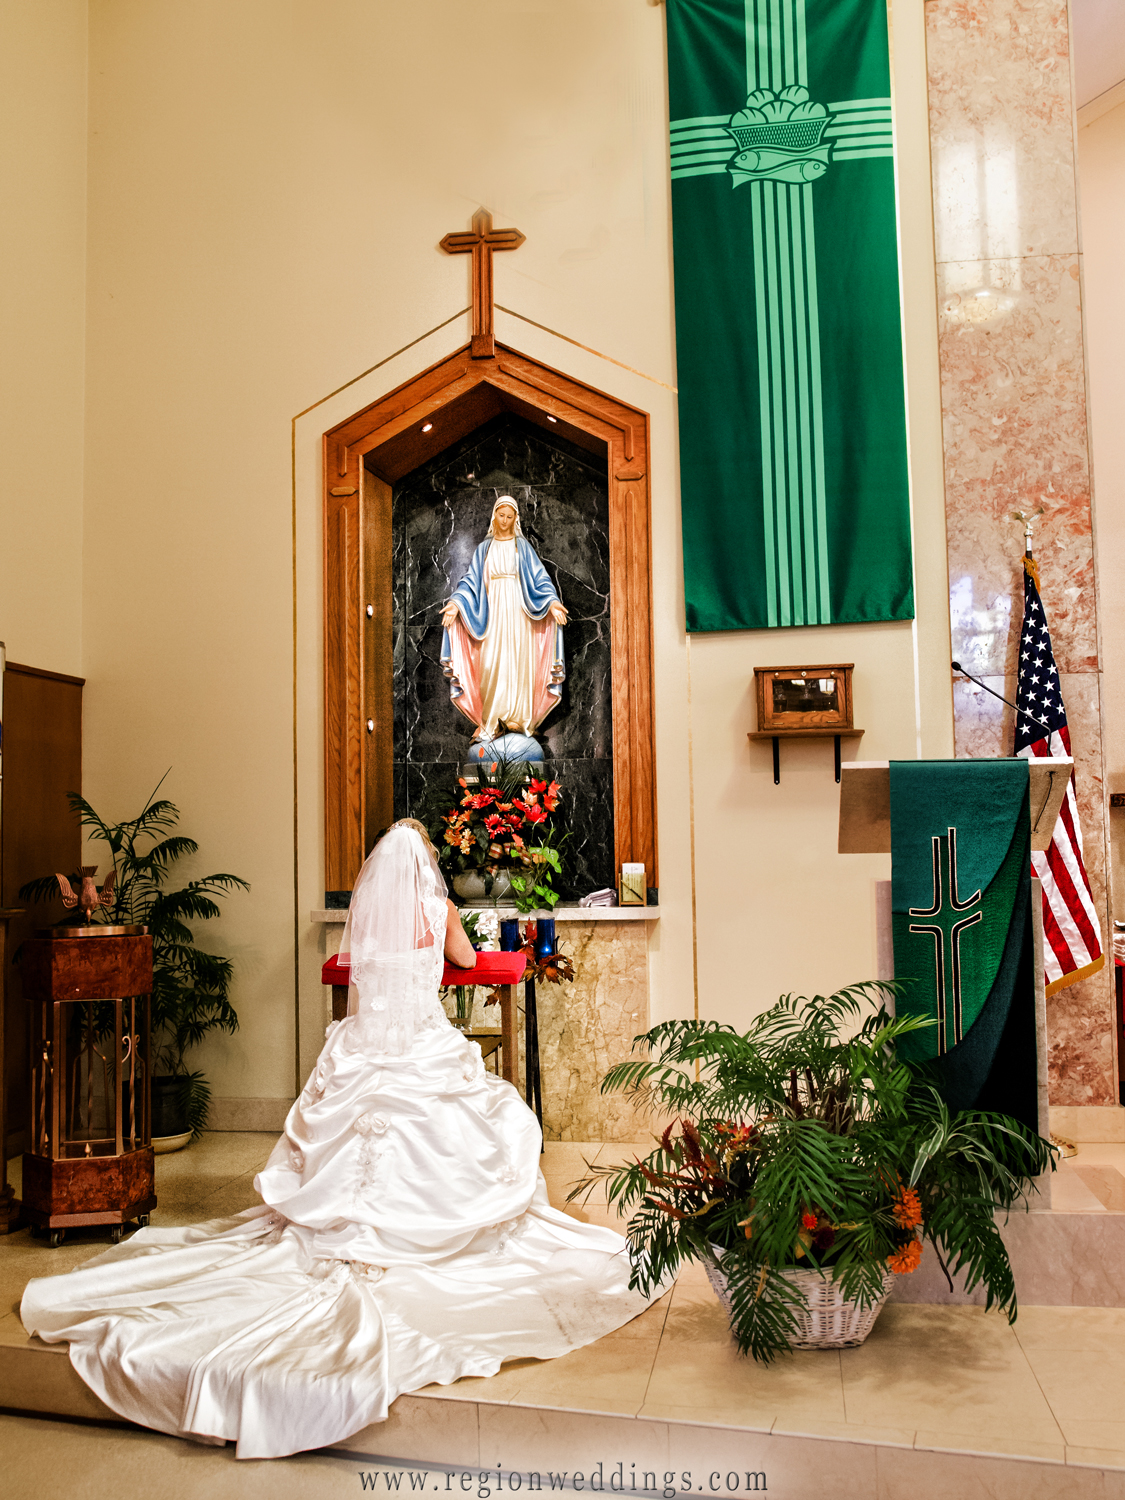 The bride prays at the statue of Mother Mary.